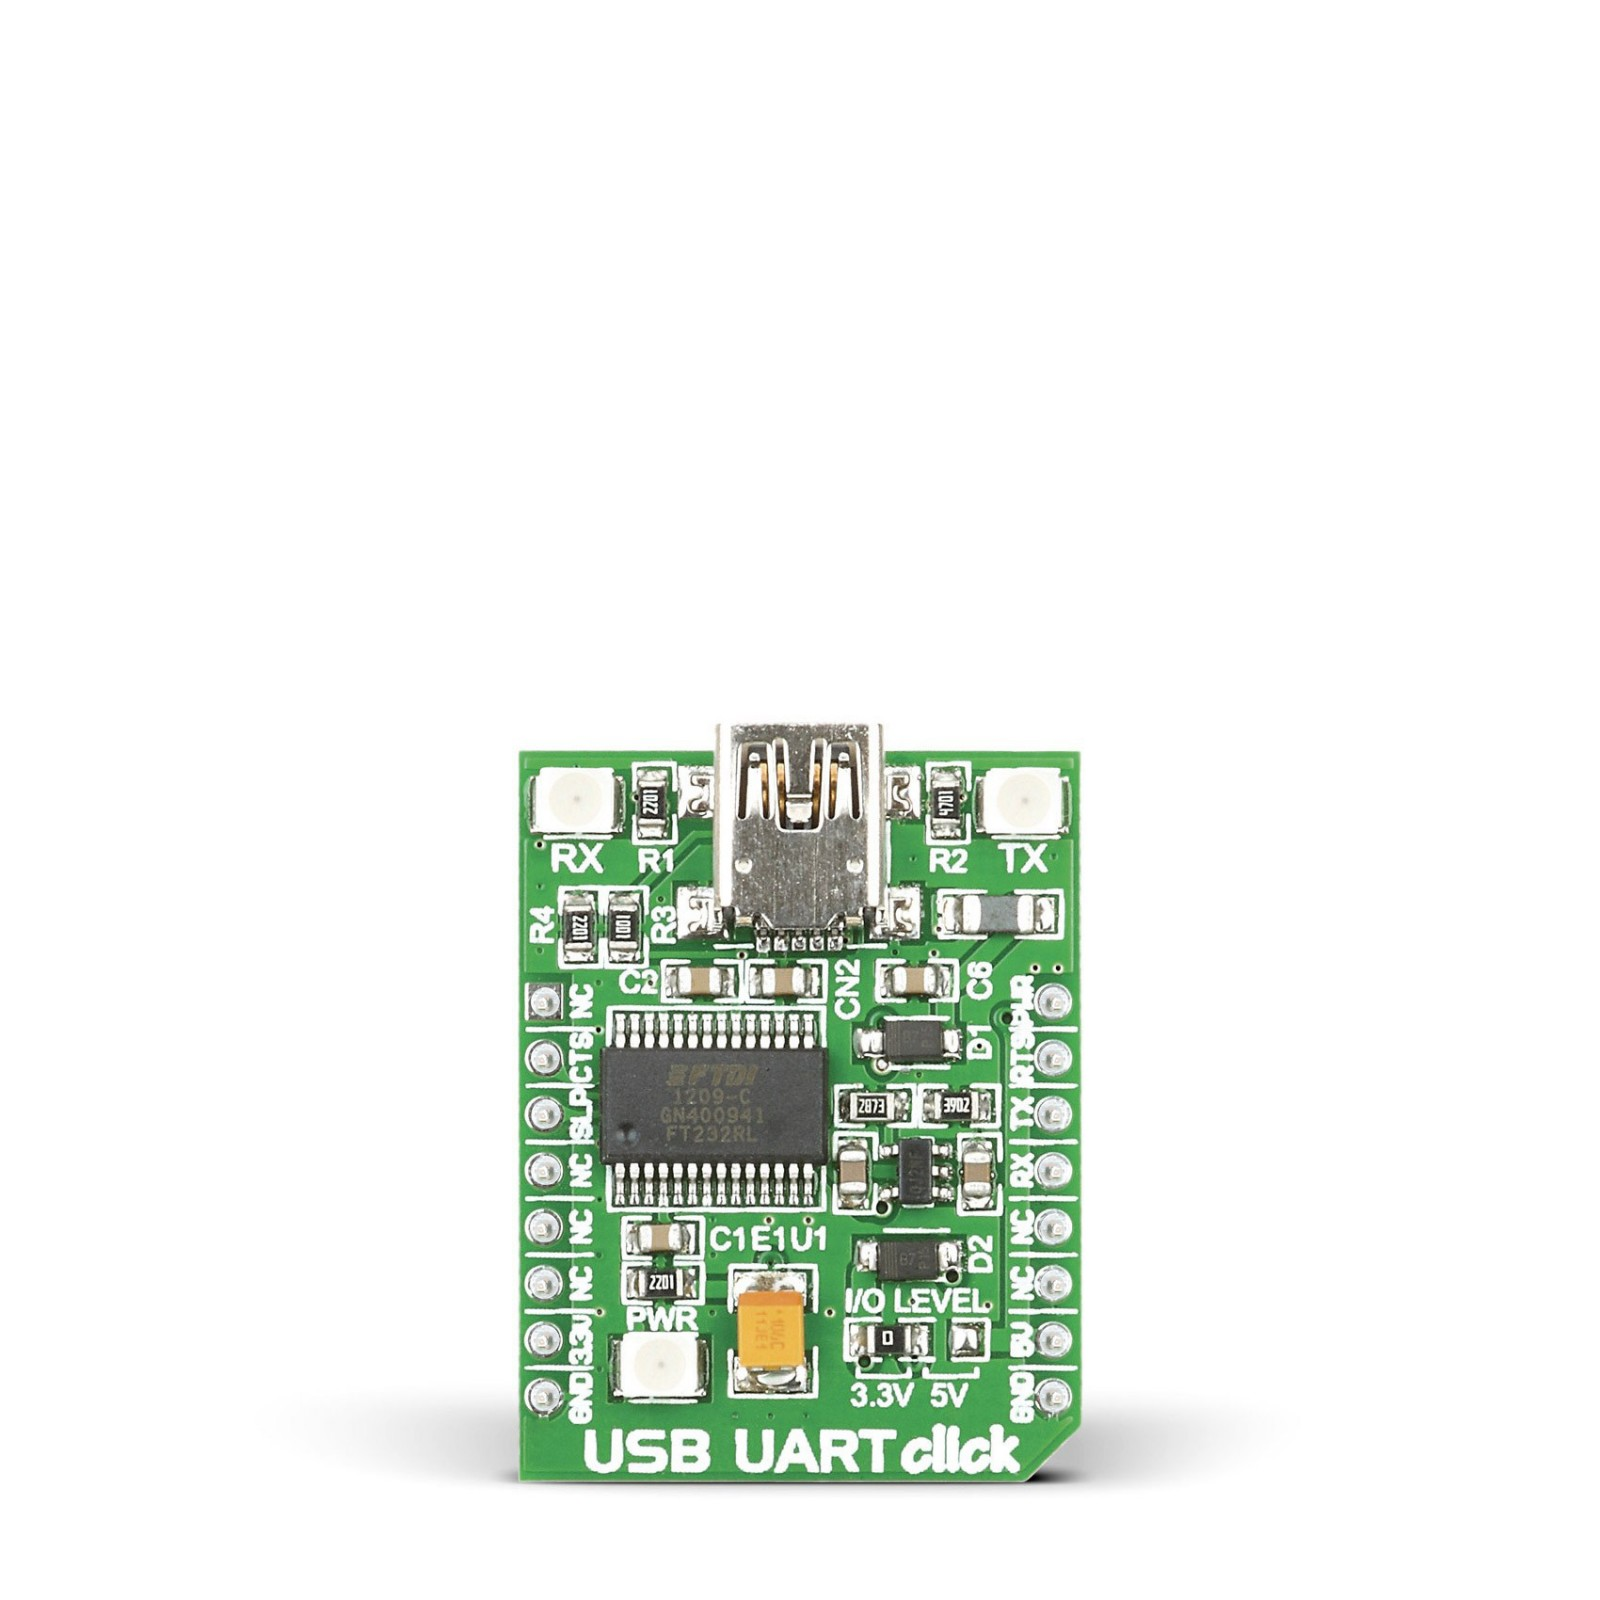 Usb Uart Click Breakout Board For Ft232rl Chip Port Schematic Mgctlbxnmzp Mgctlbxv5112 Mgctlbxlc Mgctlbxpprestashop